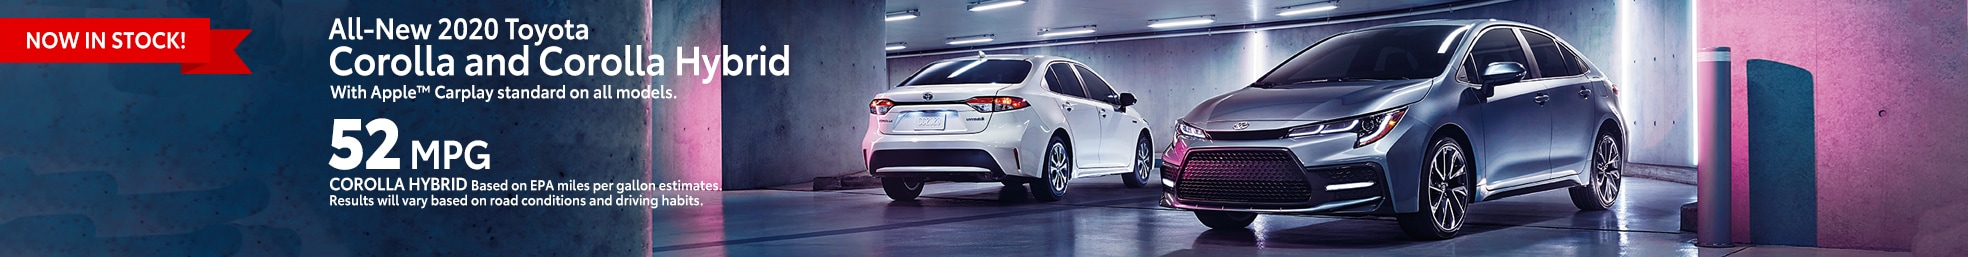 Toyota Dealer | New & Used Cars | in Richardson, near Dallas & Plano TX